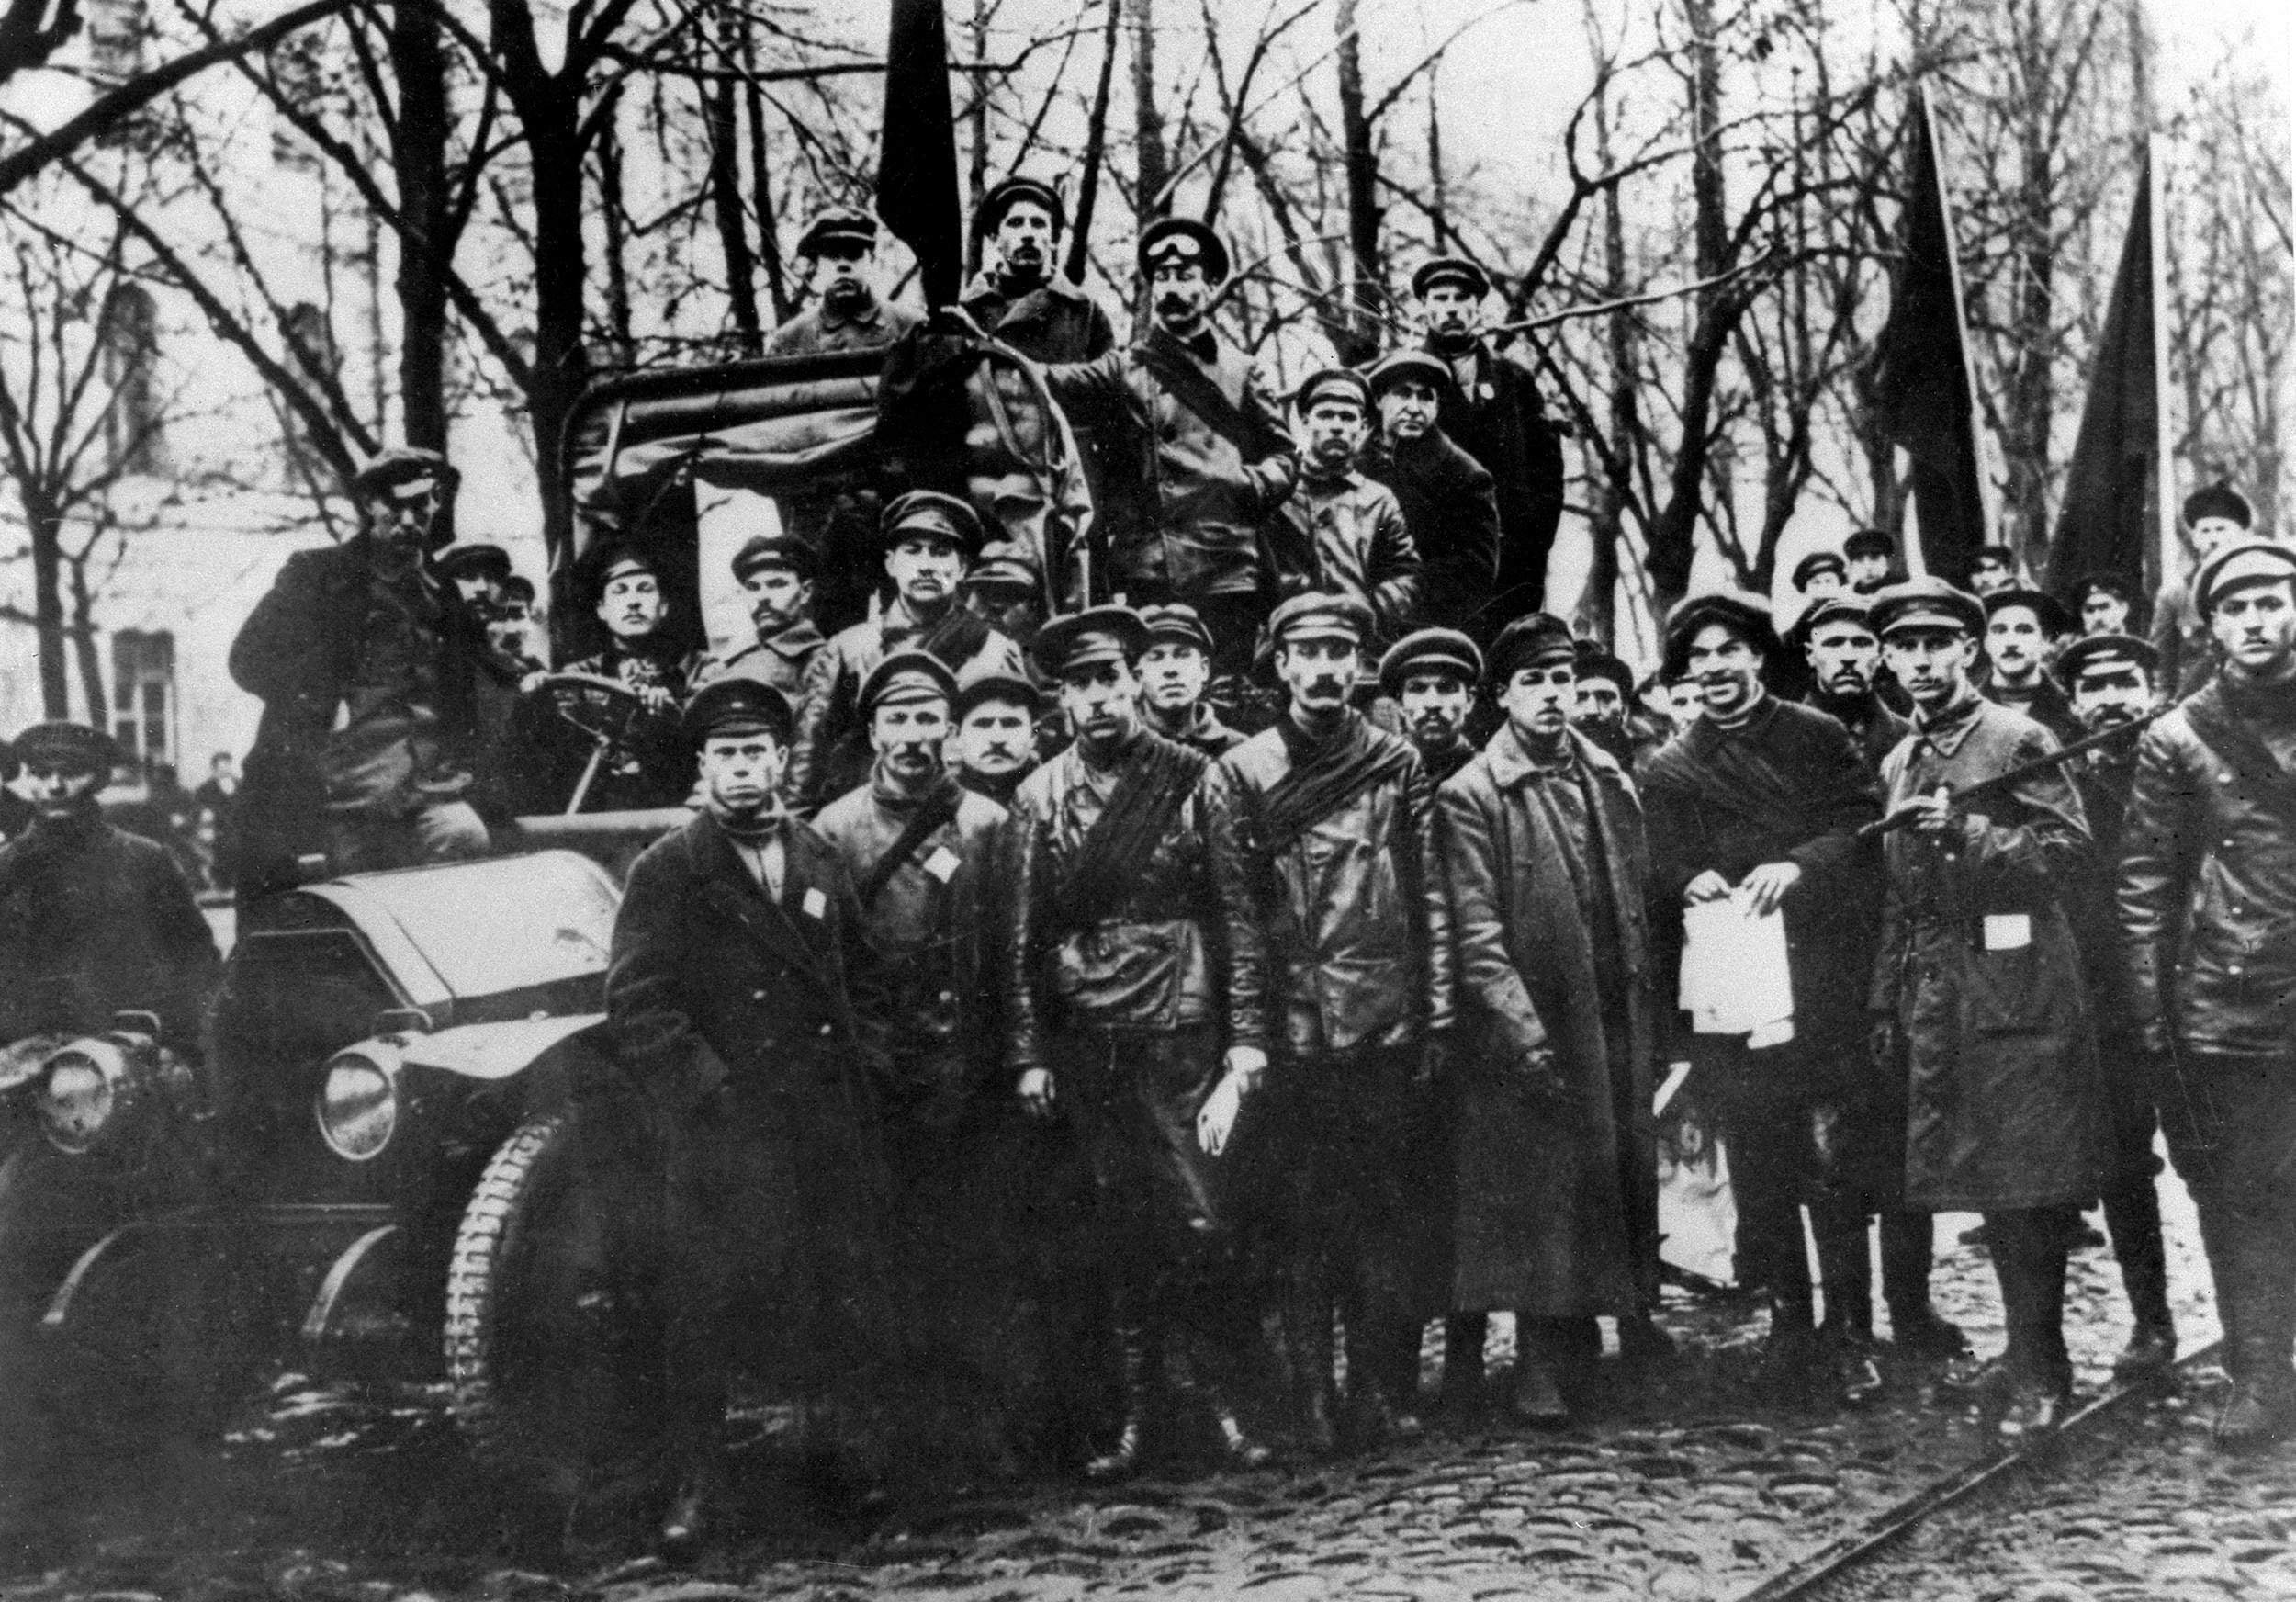 From the archive: Russia and the Bolsheviks